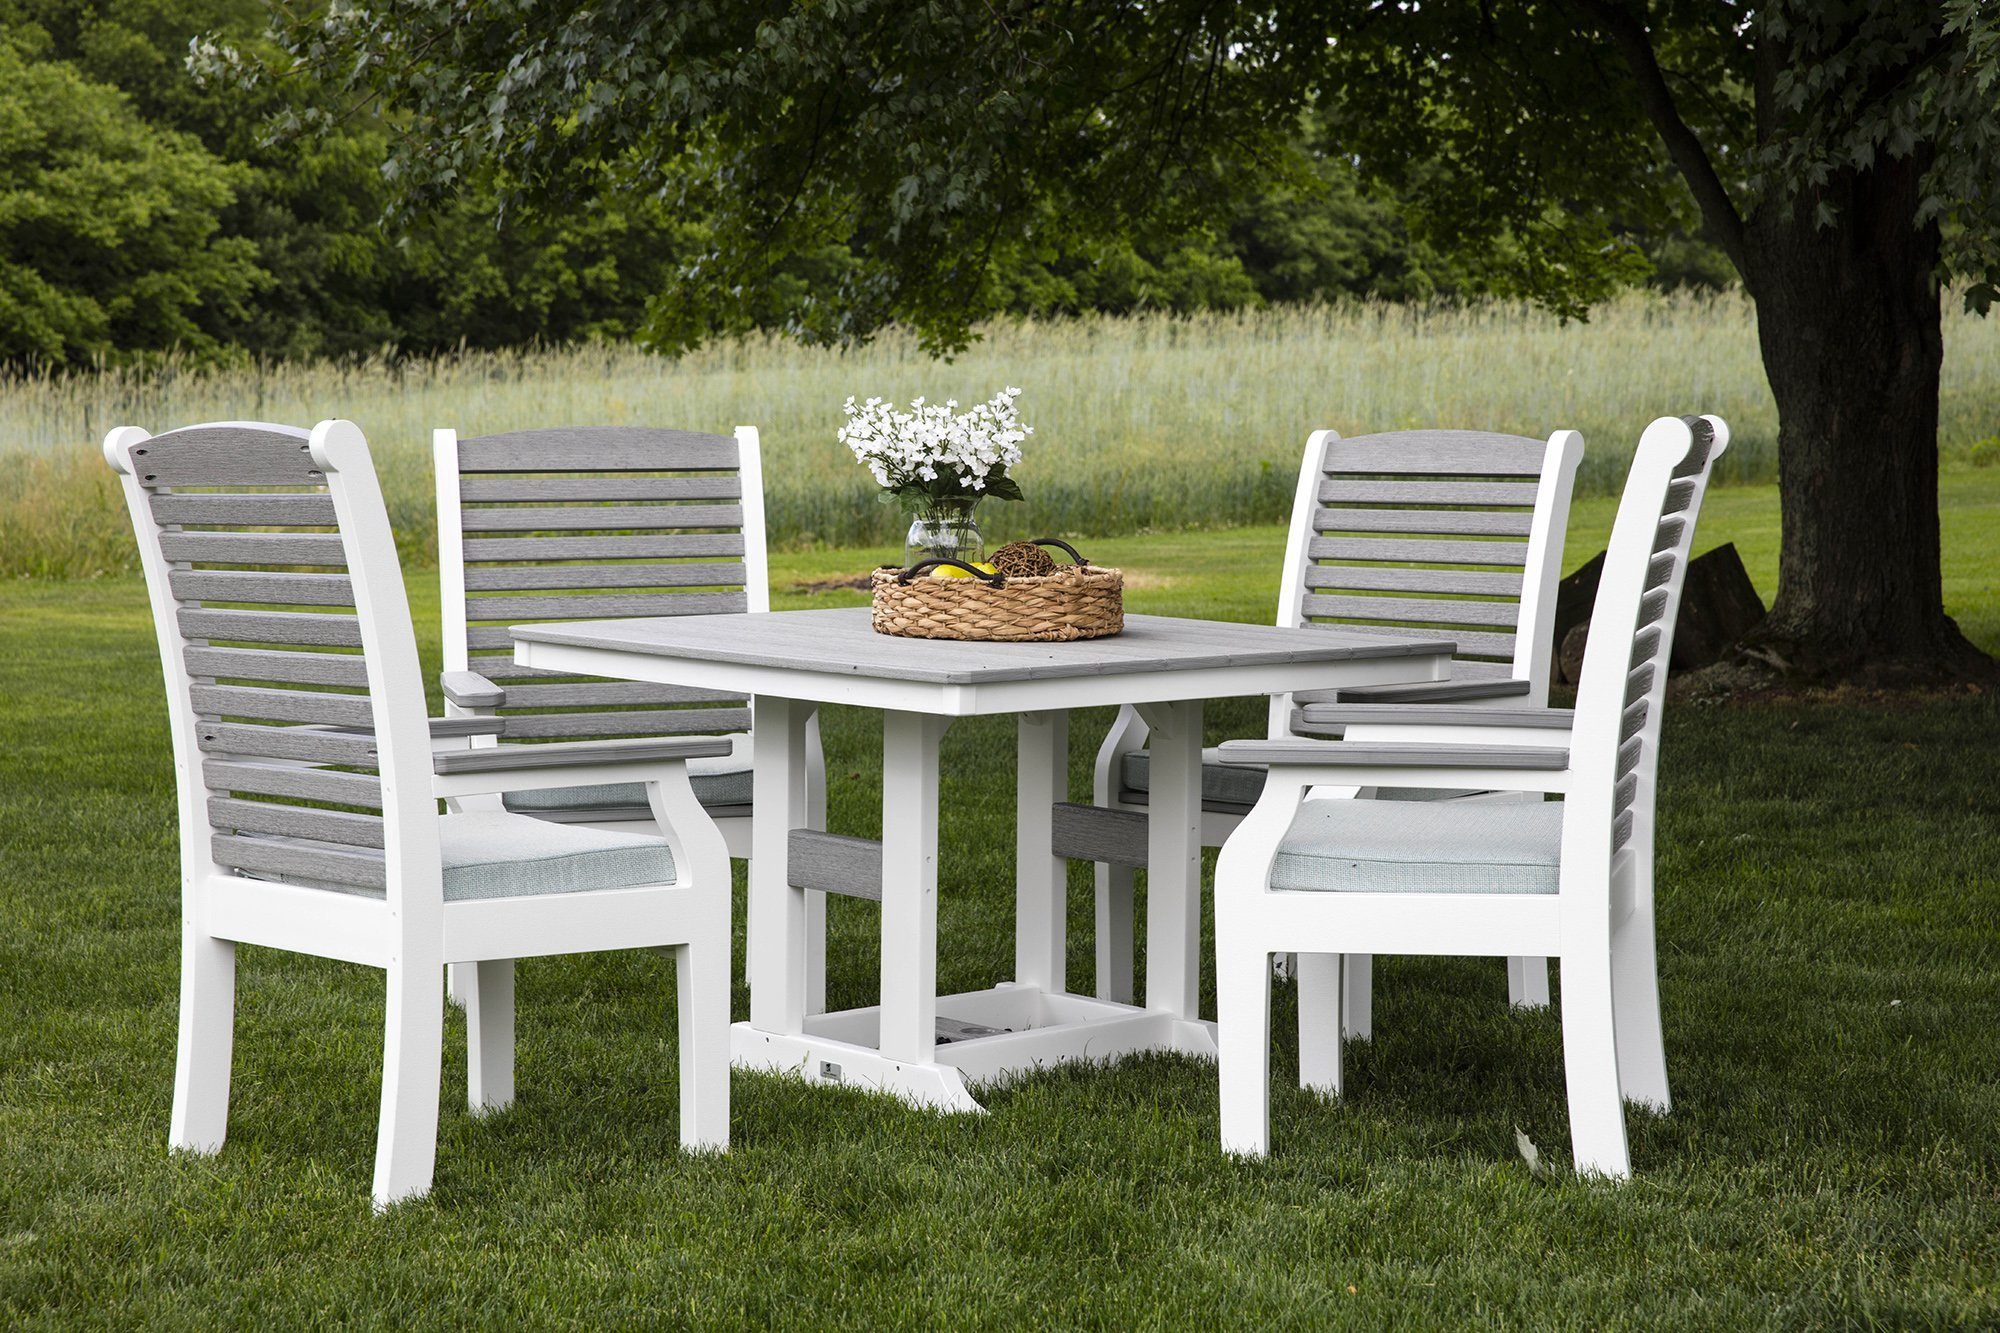 Berlin Gardens Classic Terrace Dining Set from DutchCrafters Amish